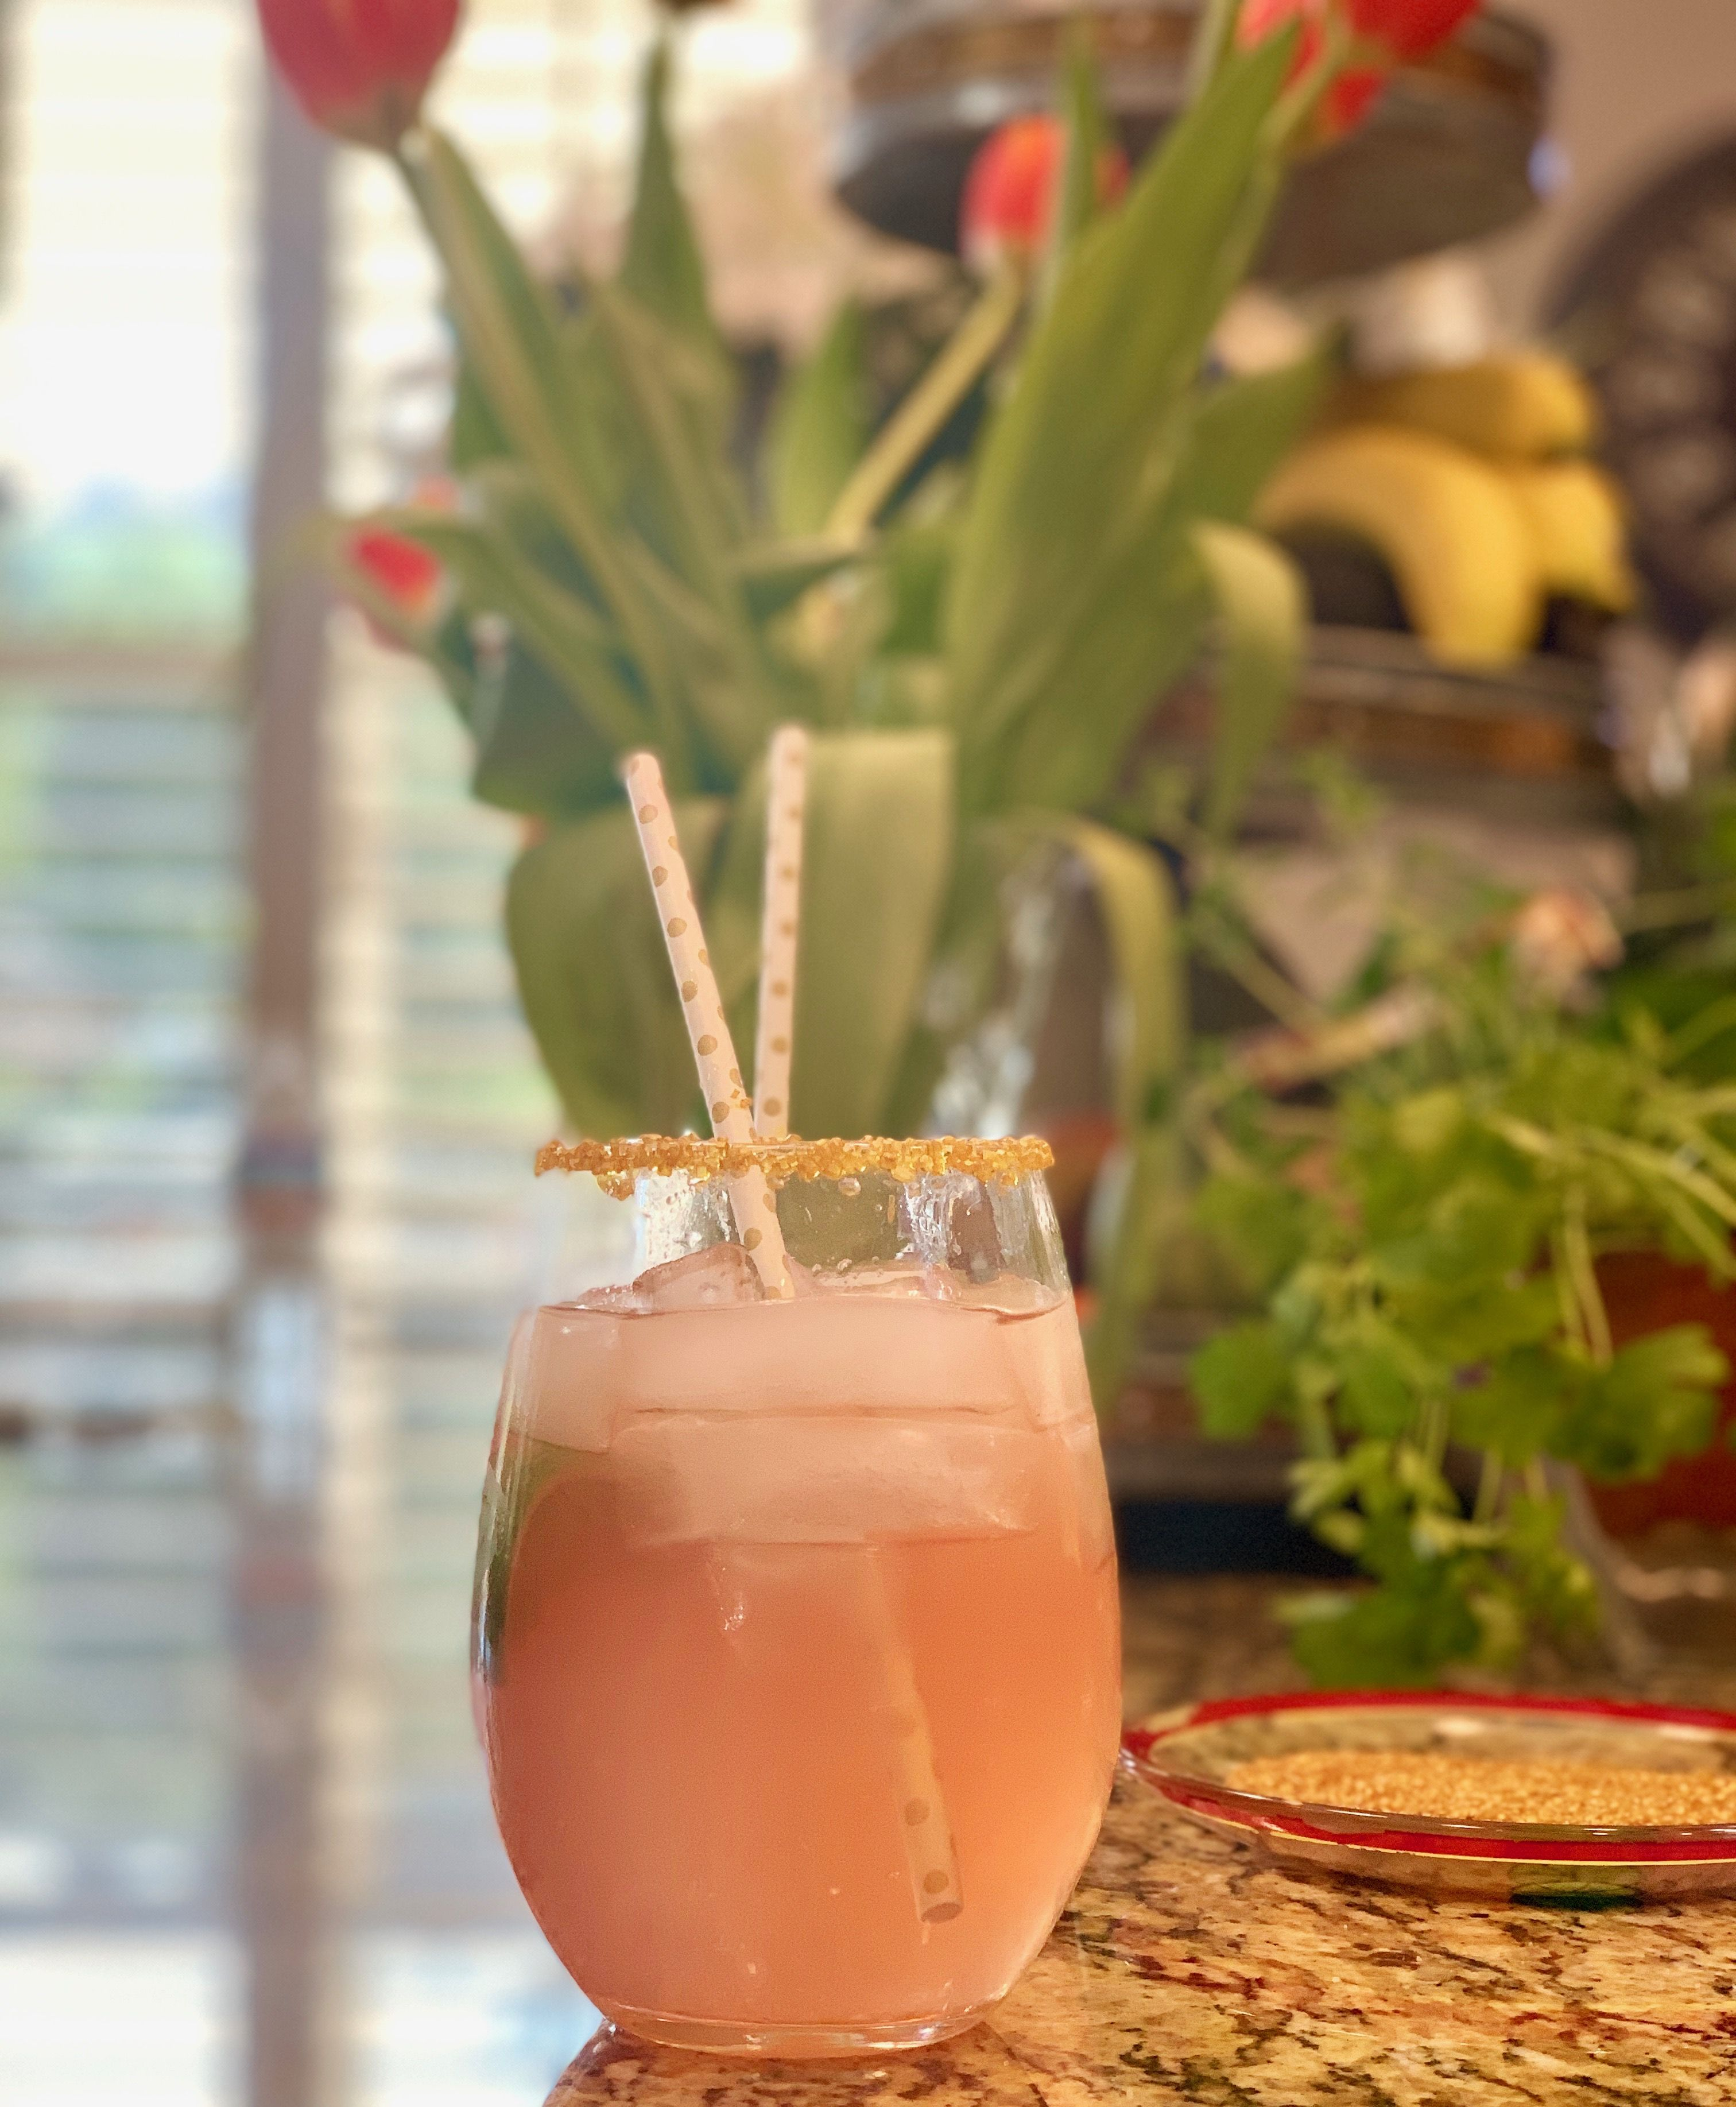 Pin on Cocktail Recipes - Ali in the Valley